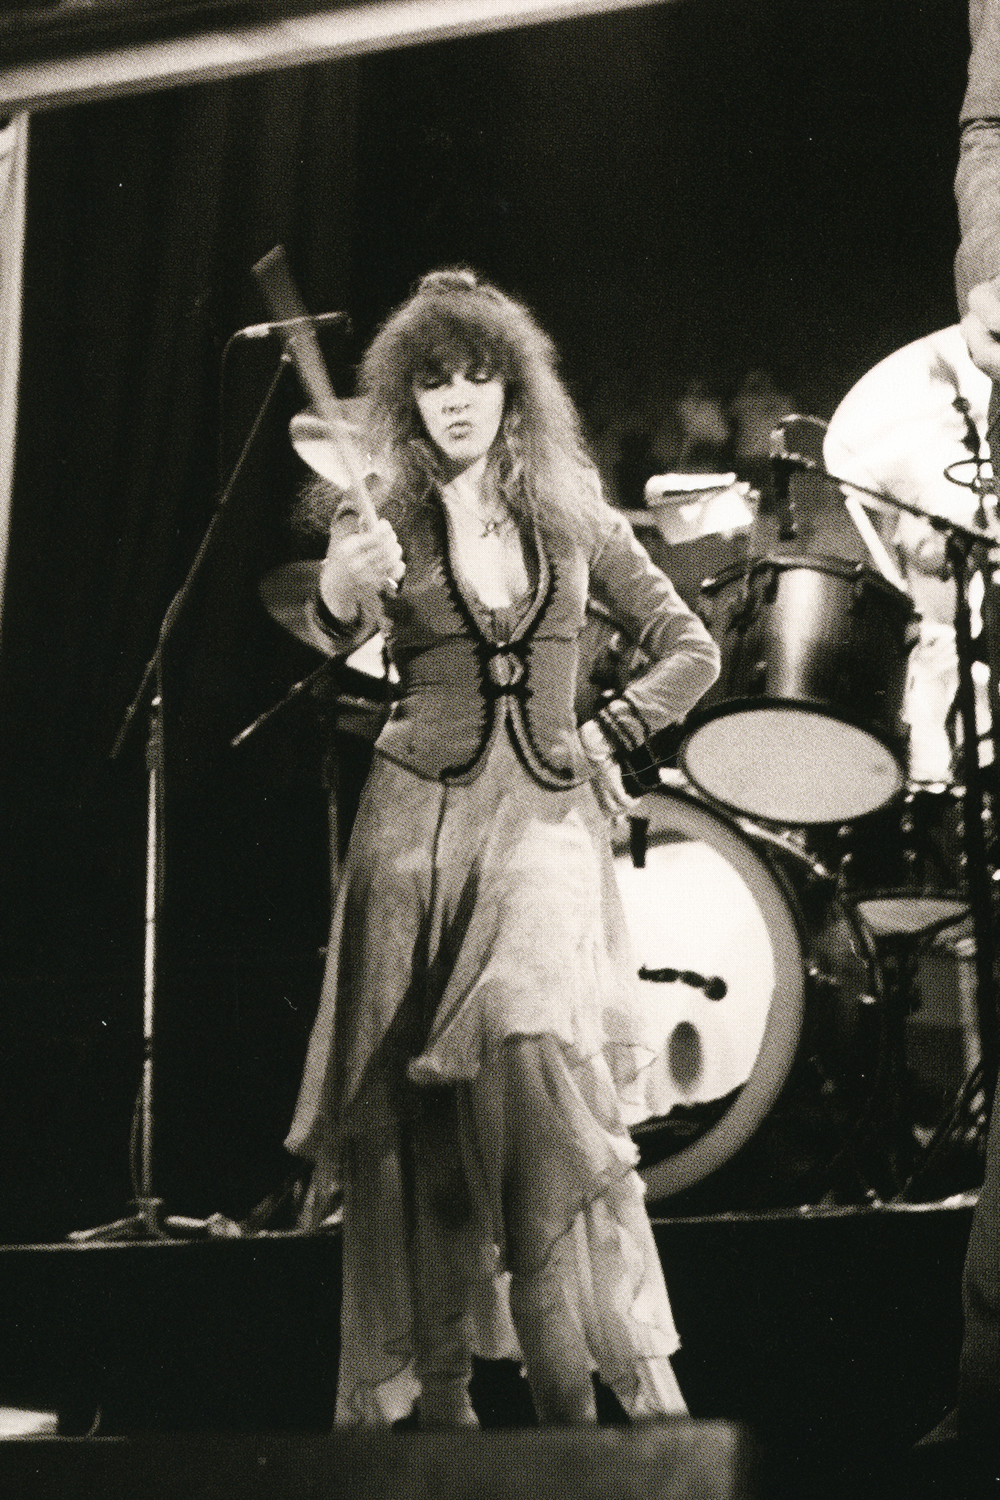 Pin by lisa j crosby on ♥ FLEETWOOD MAC ♥ (With images